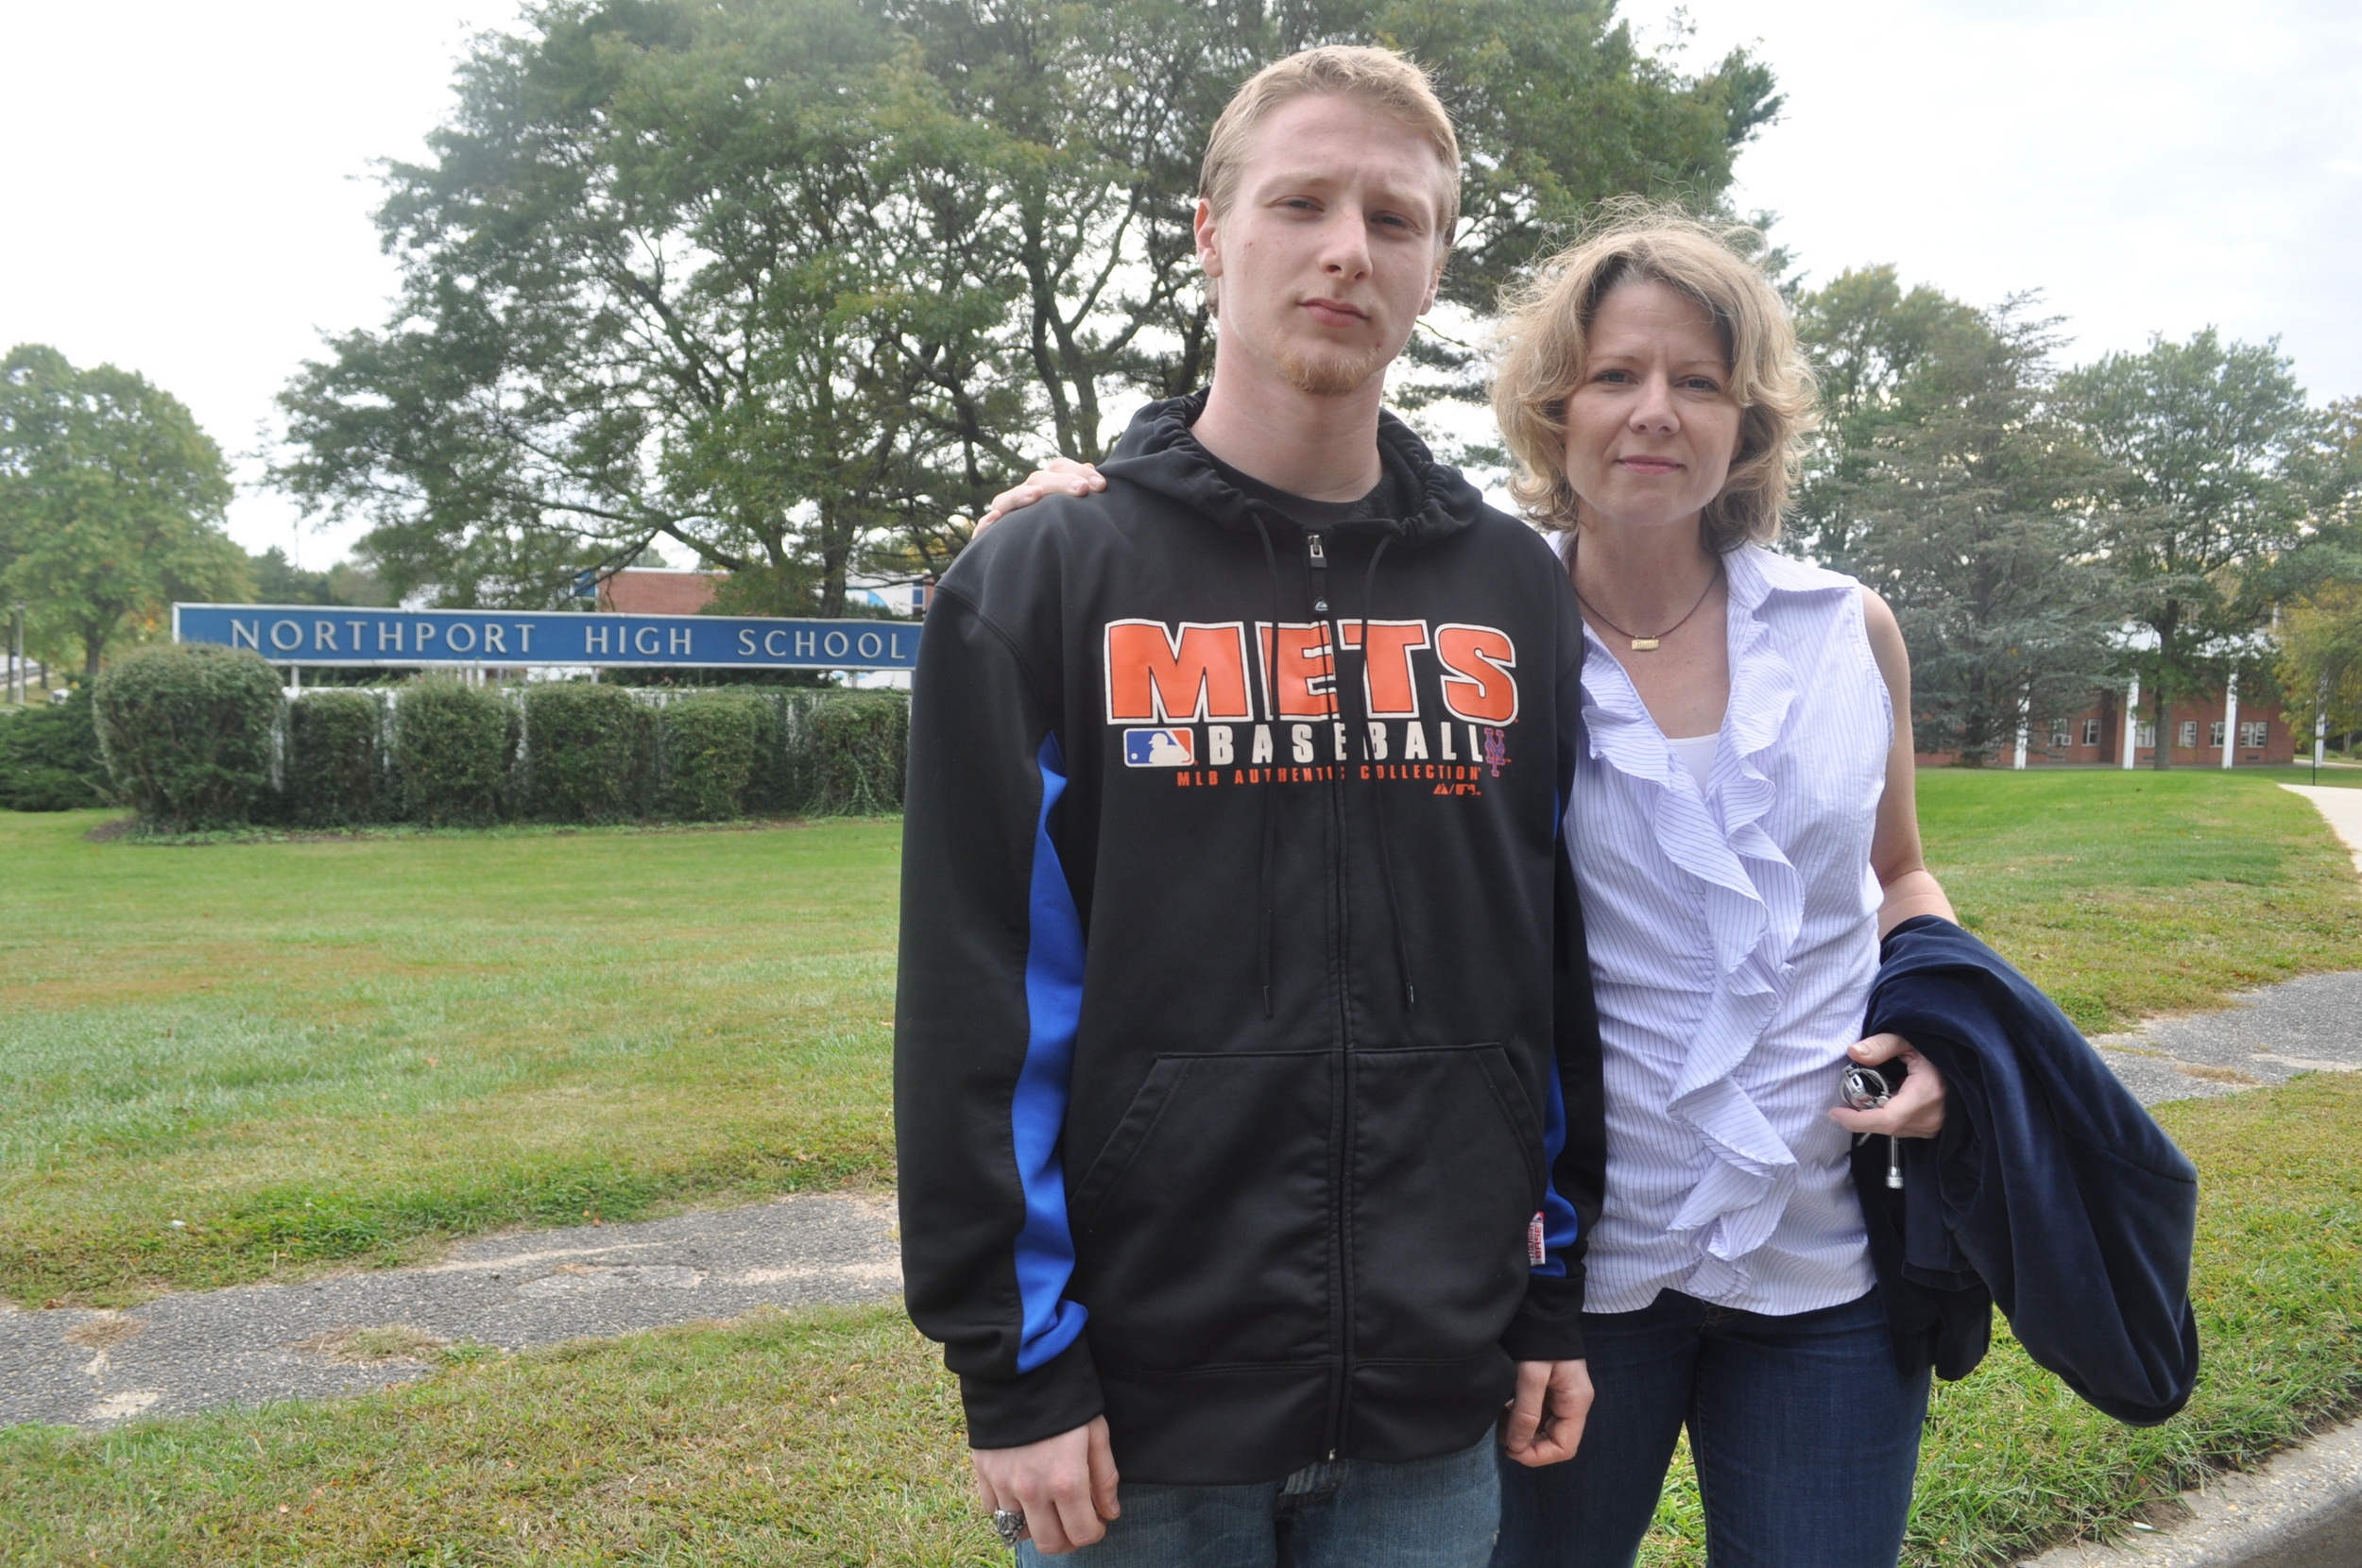 Mona Conway is suing the Northport-East Northport School district over allegations that the district denied her son, Kane Conway Goldgell, adequate special-education services at Northport High School.